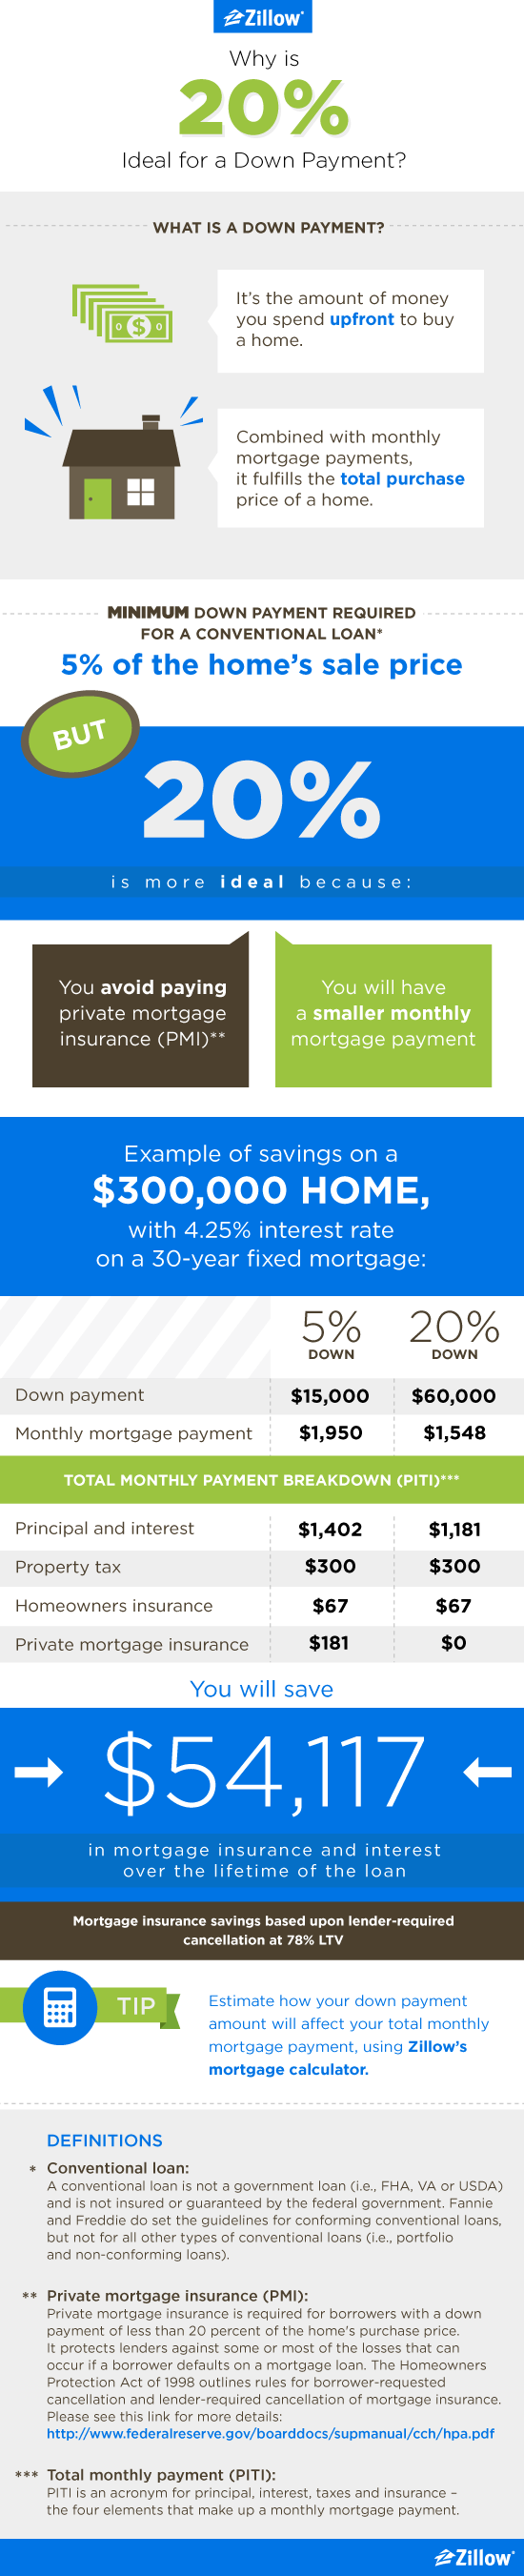 Blog_20Percent_Infograph_Zillow_05-27_a_02